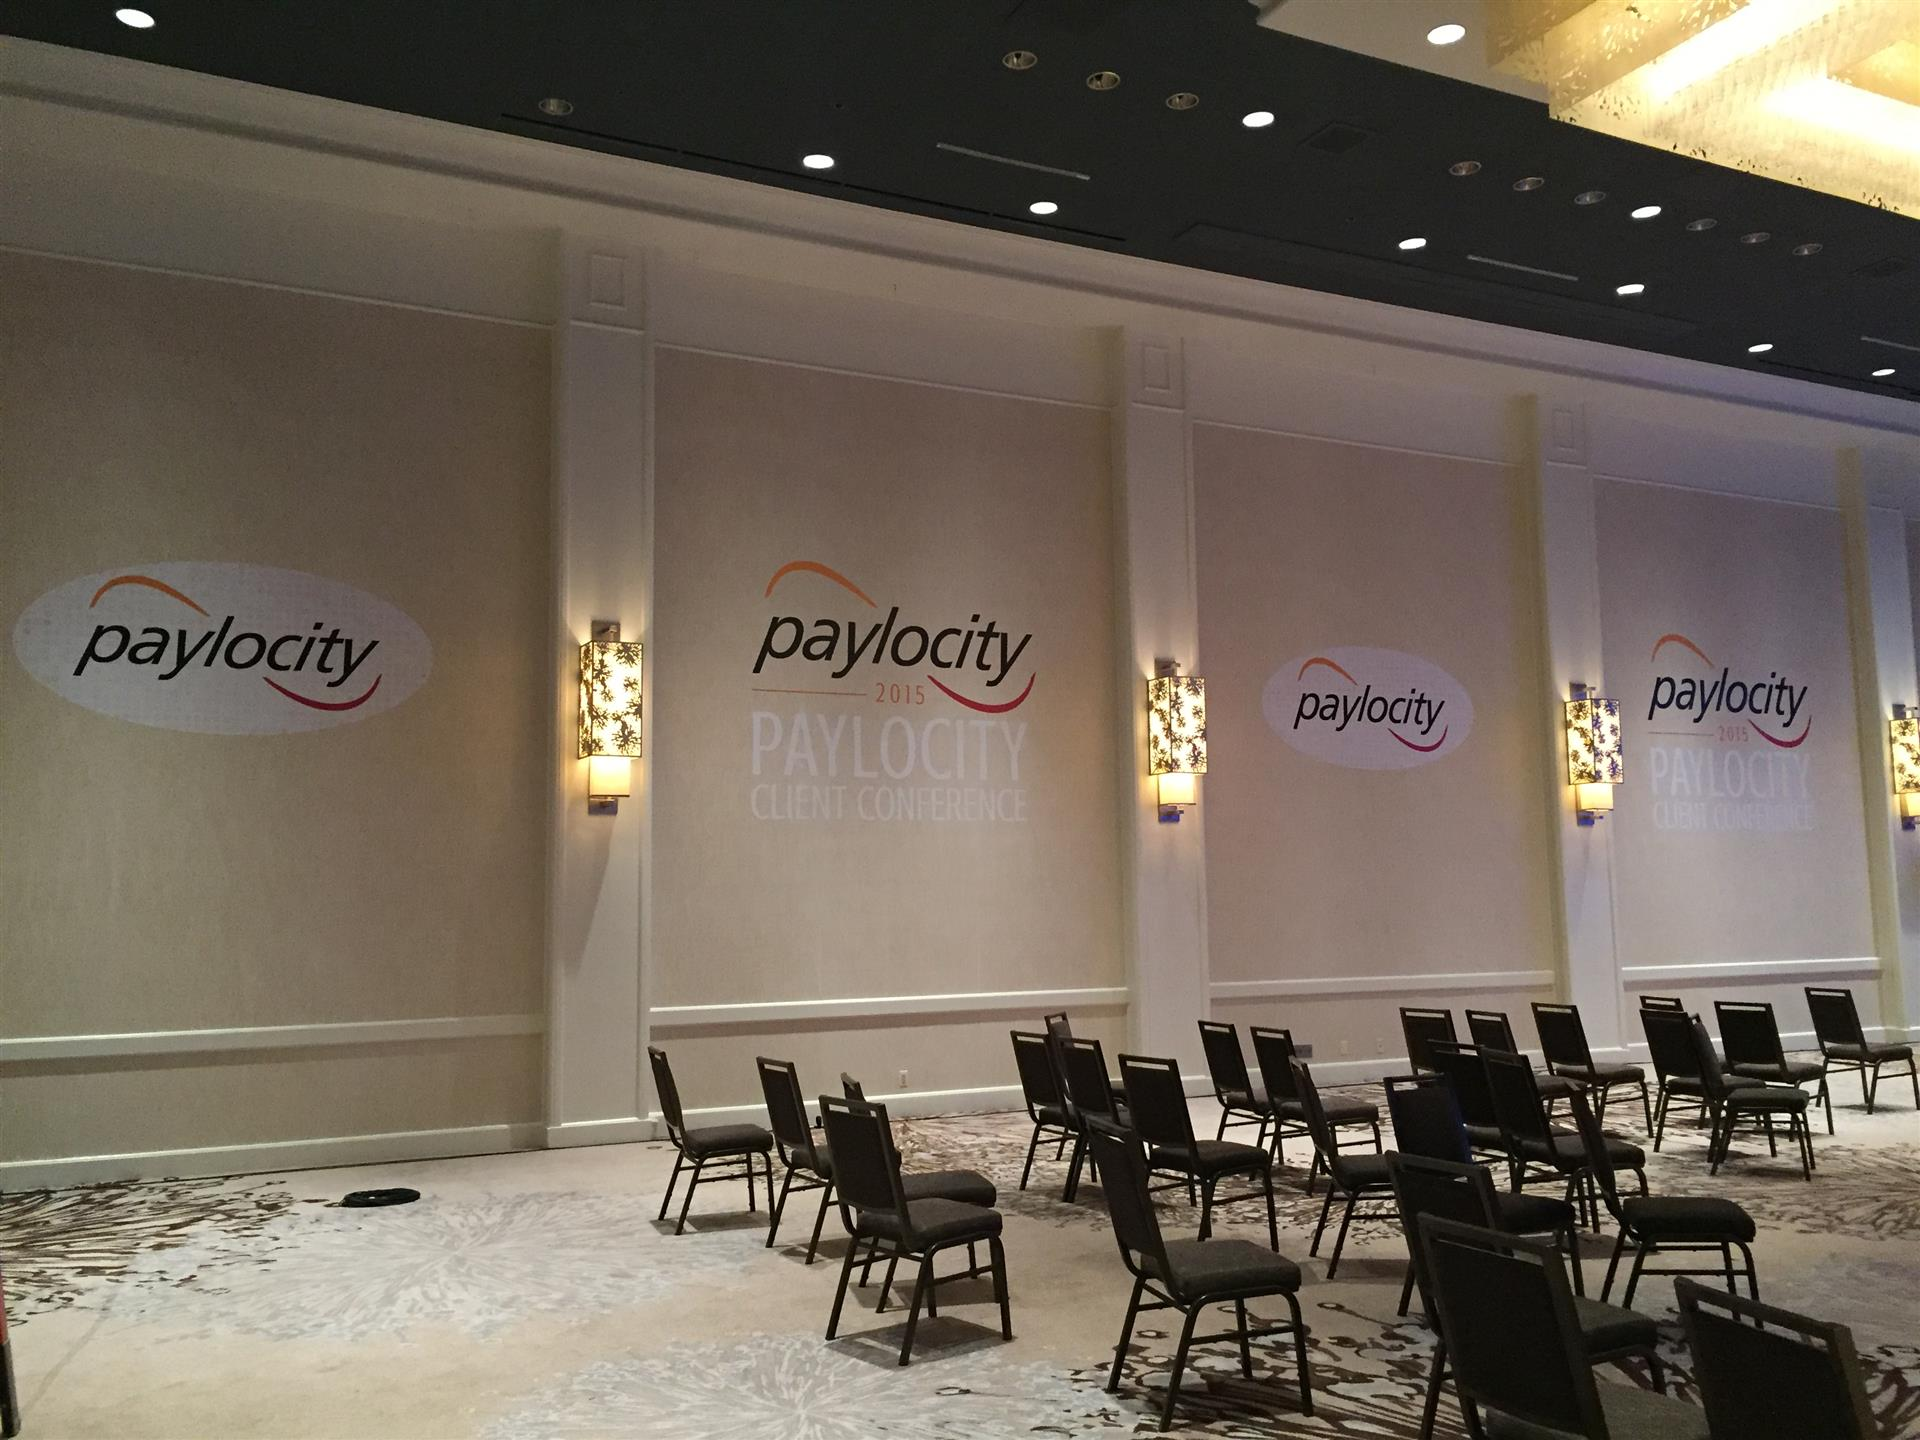 Paylocity Conference Room Wall Signs